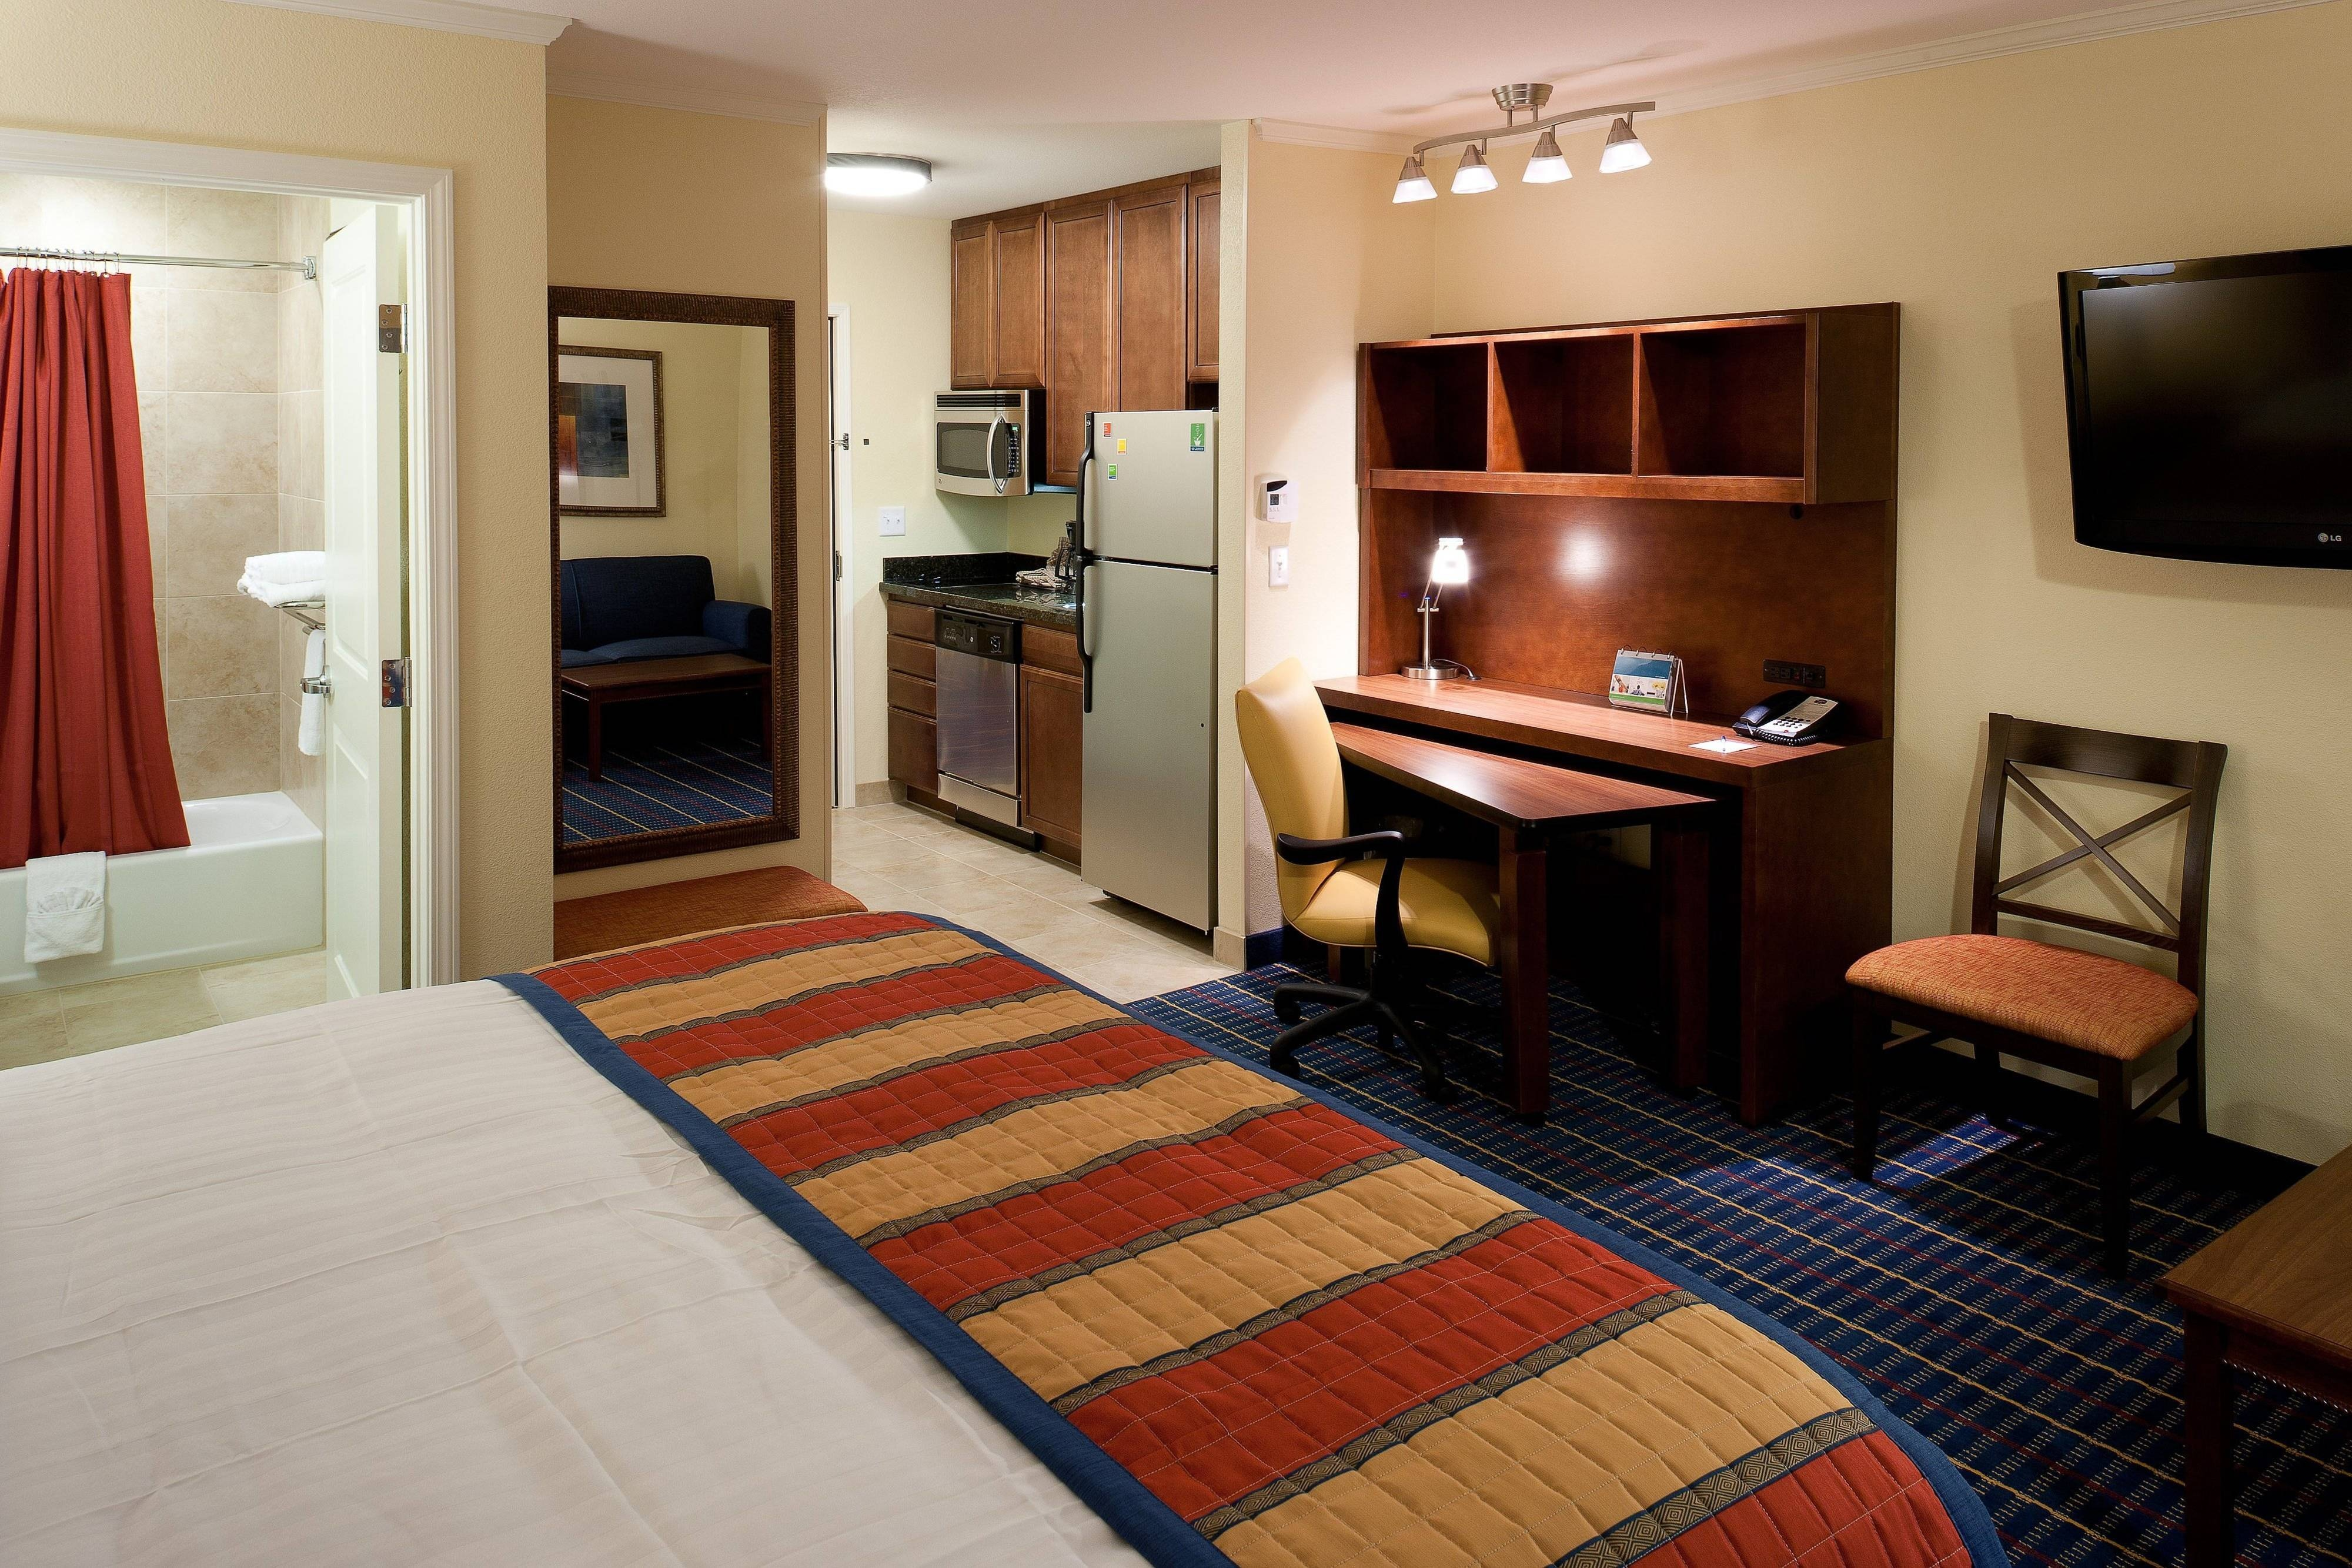 King Studio - Tucson AZ hotels